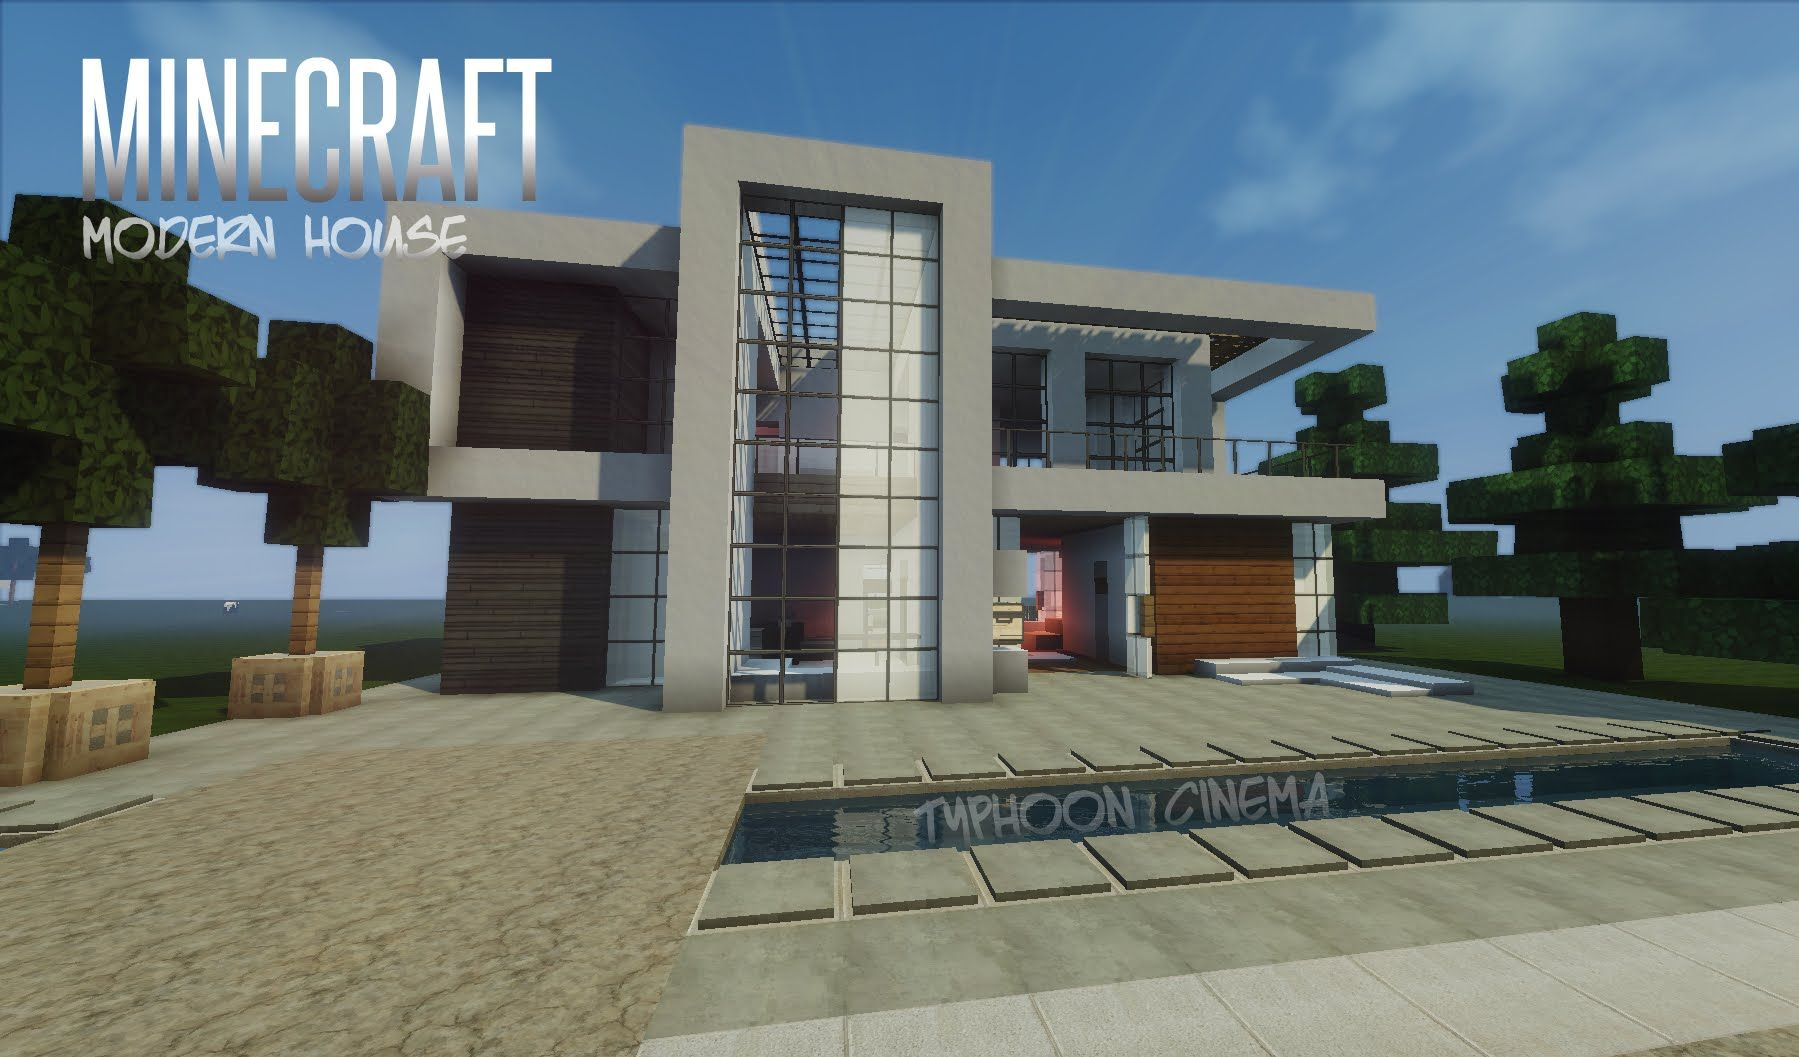 Biggest Minecraft House In The World 2013 minecraft: how to build a modern house / best modern house 2013